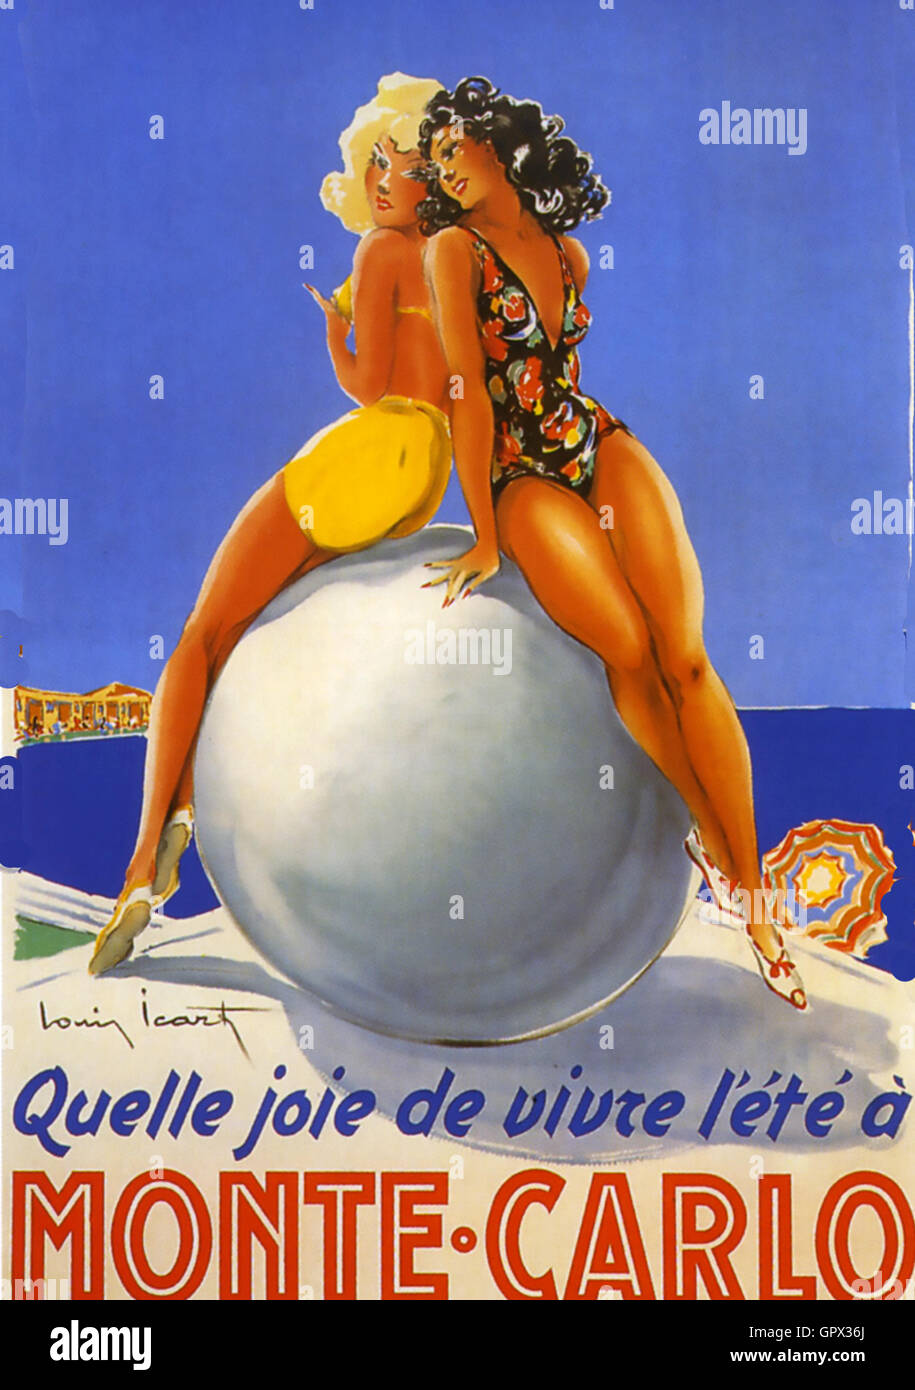 MONTE CARLO promotional poster about 1955 - Stock Image